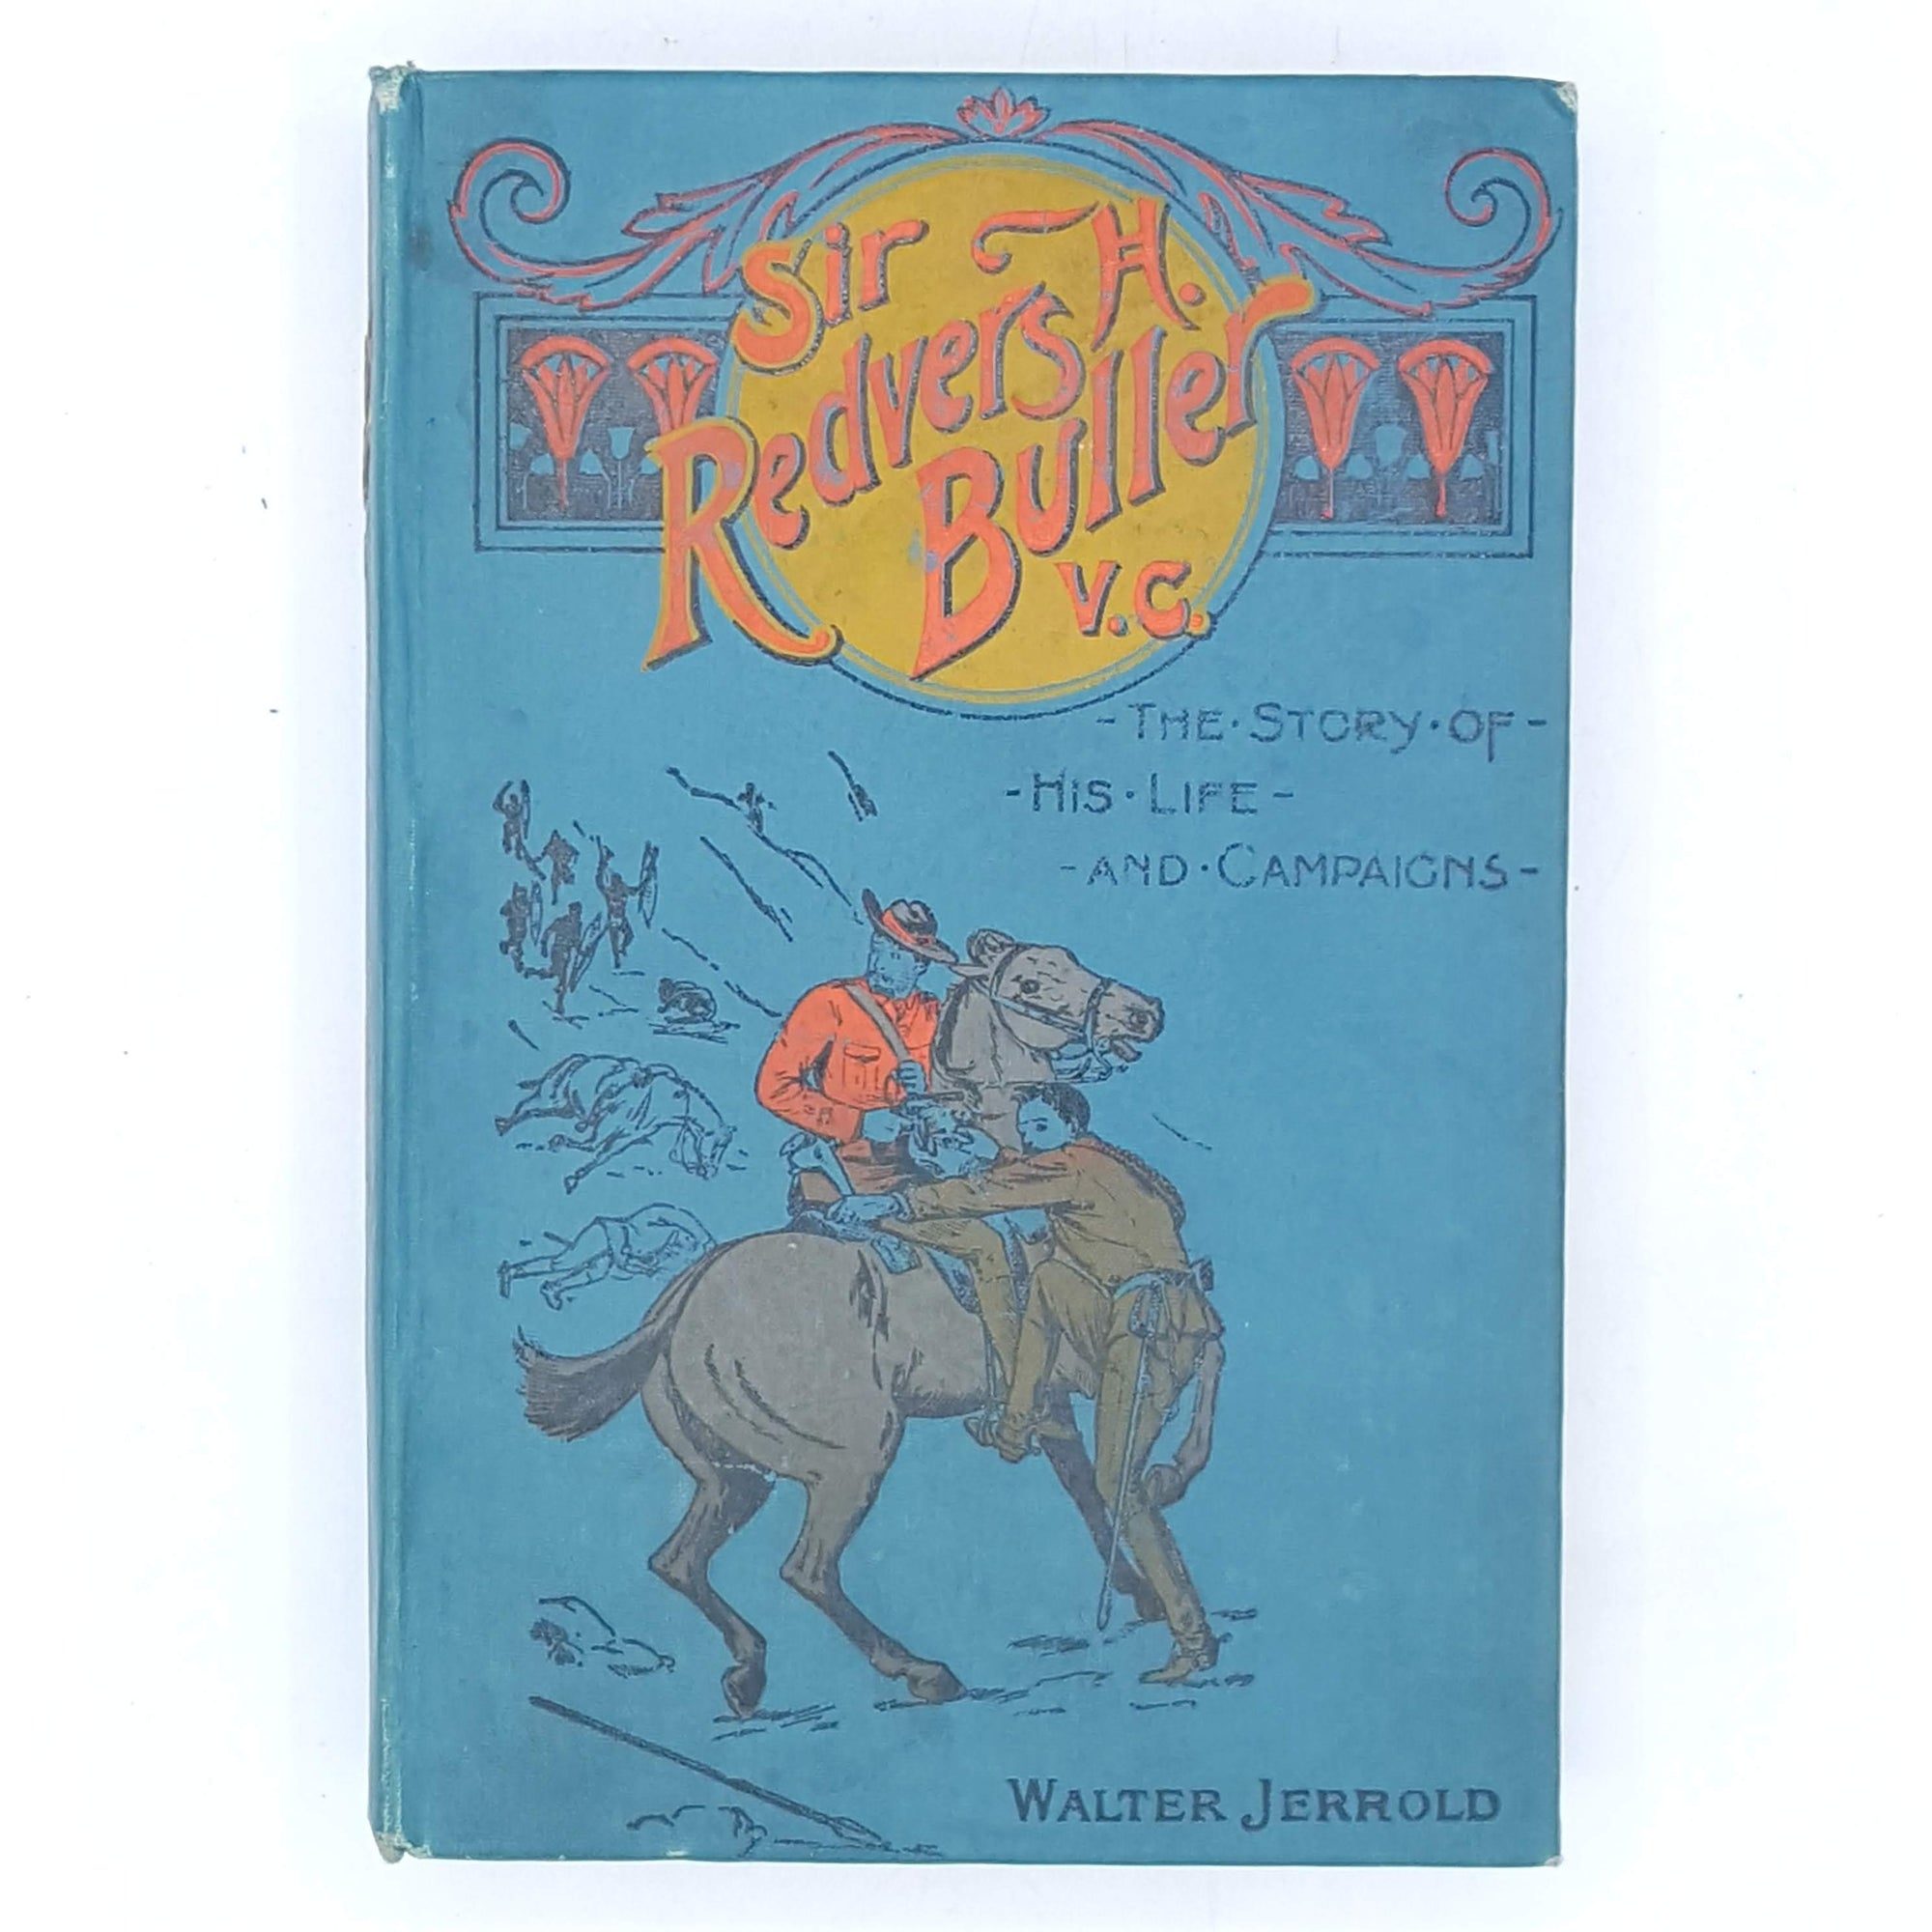 blue-patterned-walter-jerrold-1908-classic-sir-redvers-h-buller-country-house-library-books-dalton-decorative-thrift-old-vintage-antique-